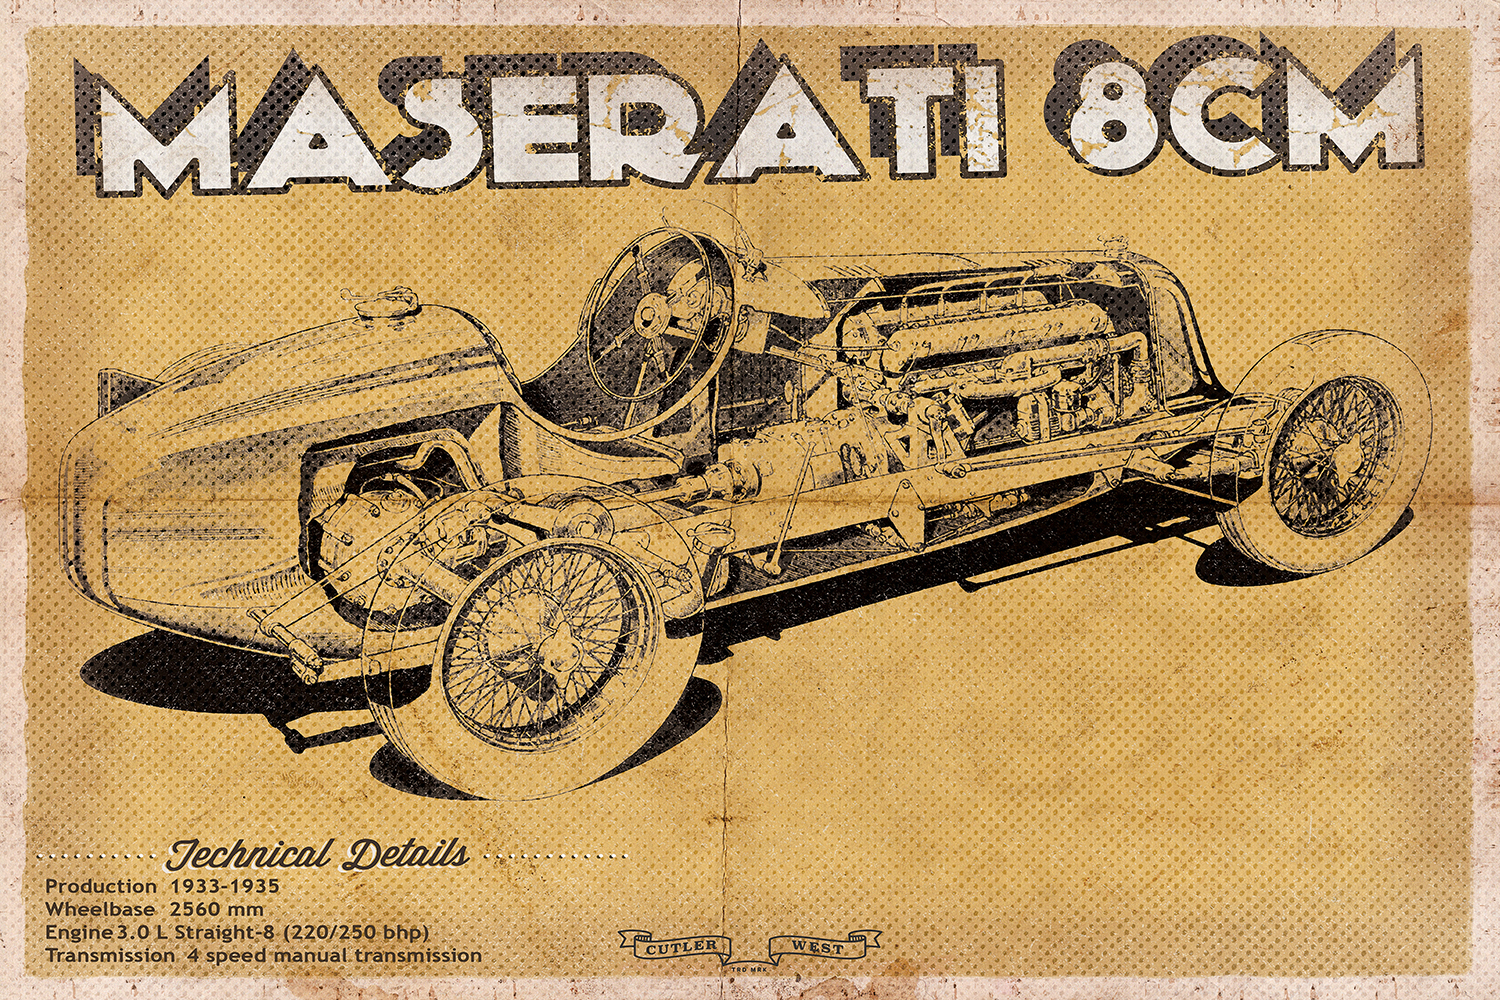 Beige blueprint of a vintage Maserati with technical details on the bottom